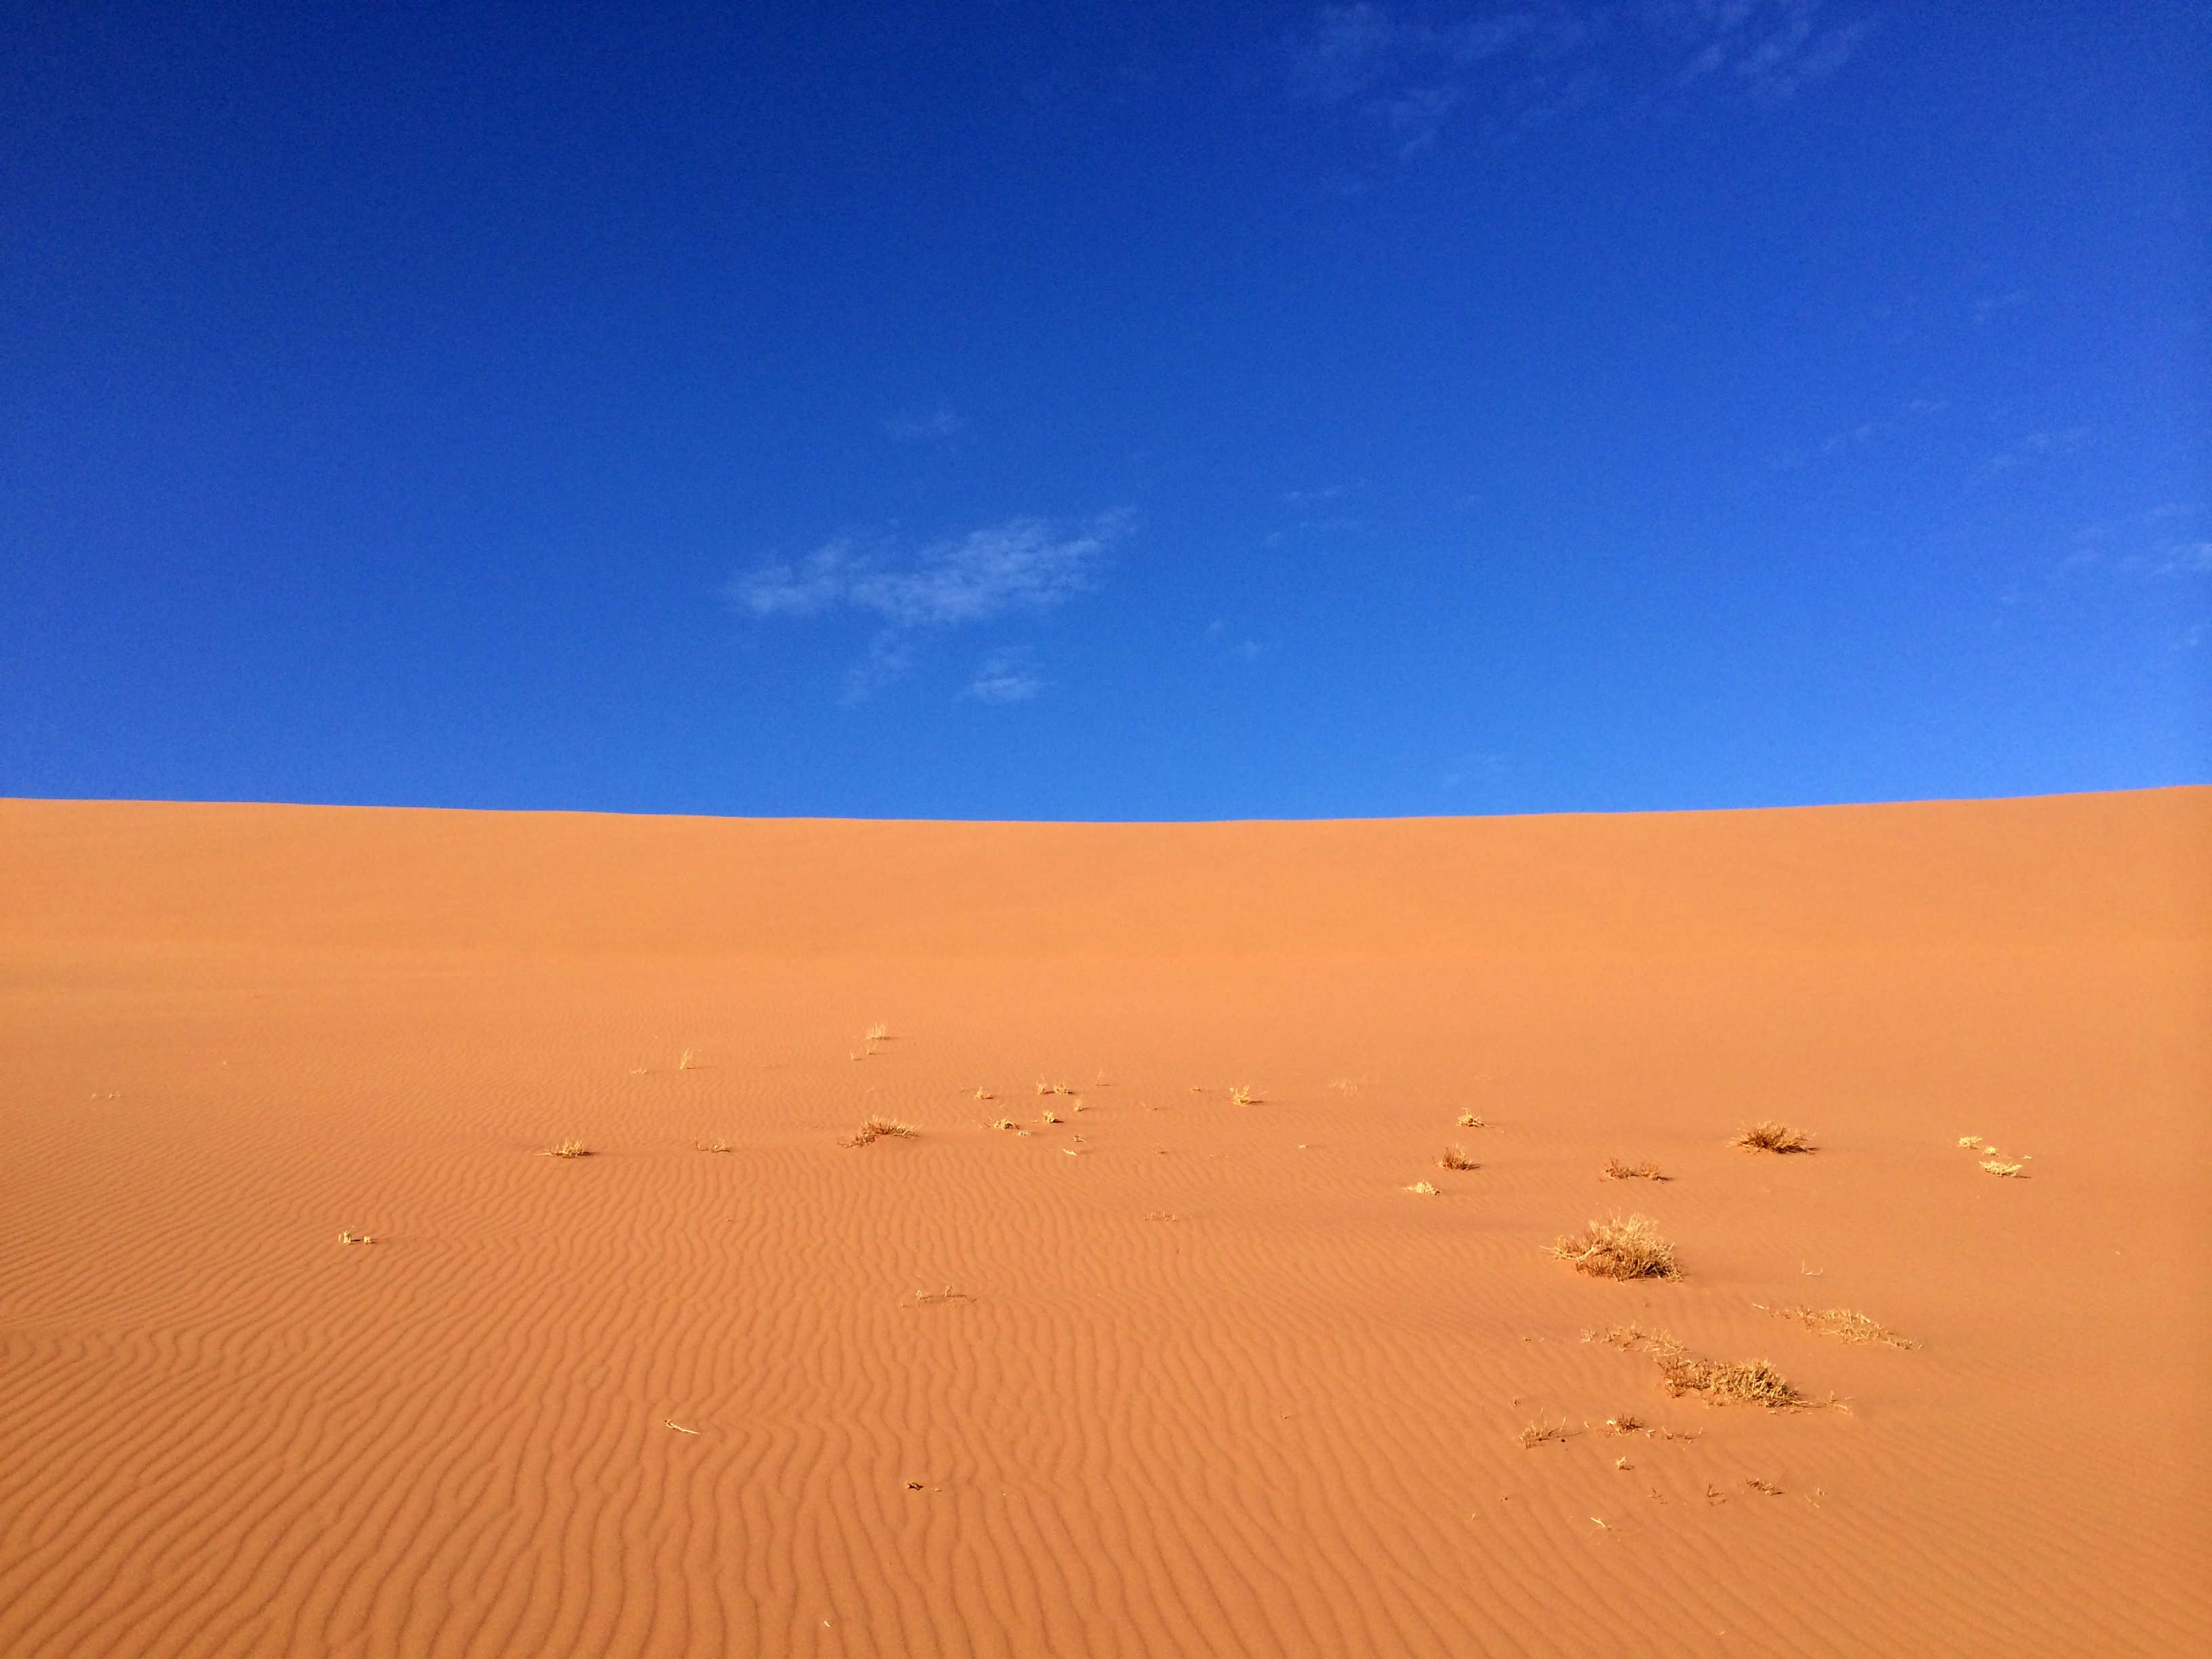 Sand Dune | Photo by Wilson Carletti (All Rights Reserved)